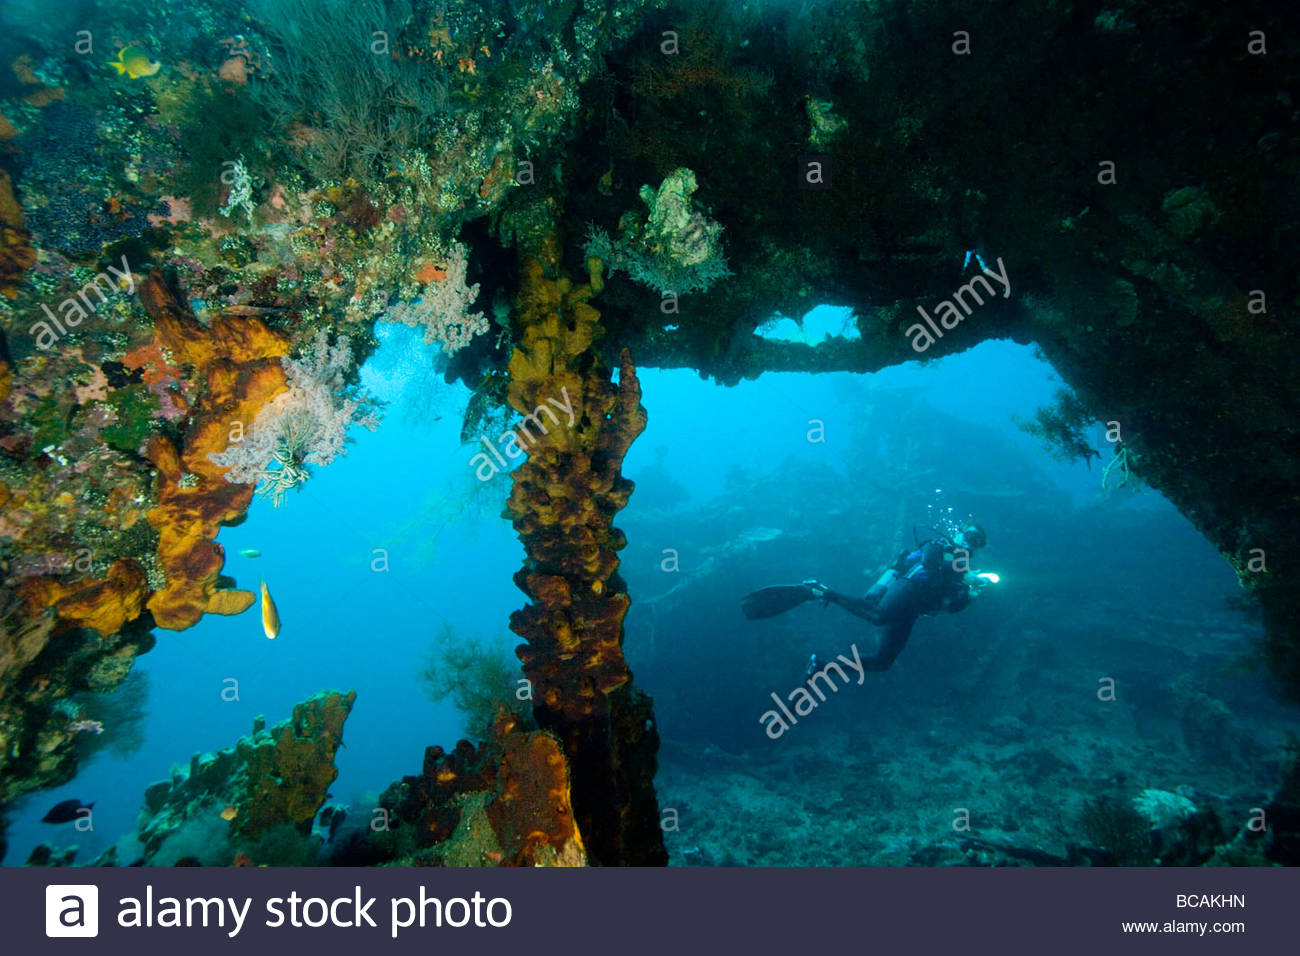 Diving on wreck of the ship 'Liberty', sunk by Japenese in 1942. - Stock Image